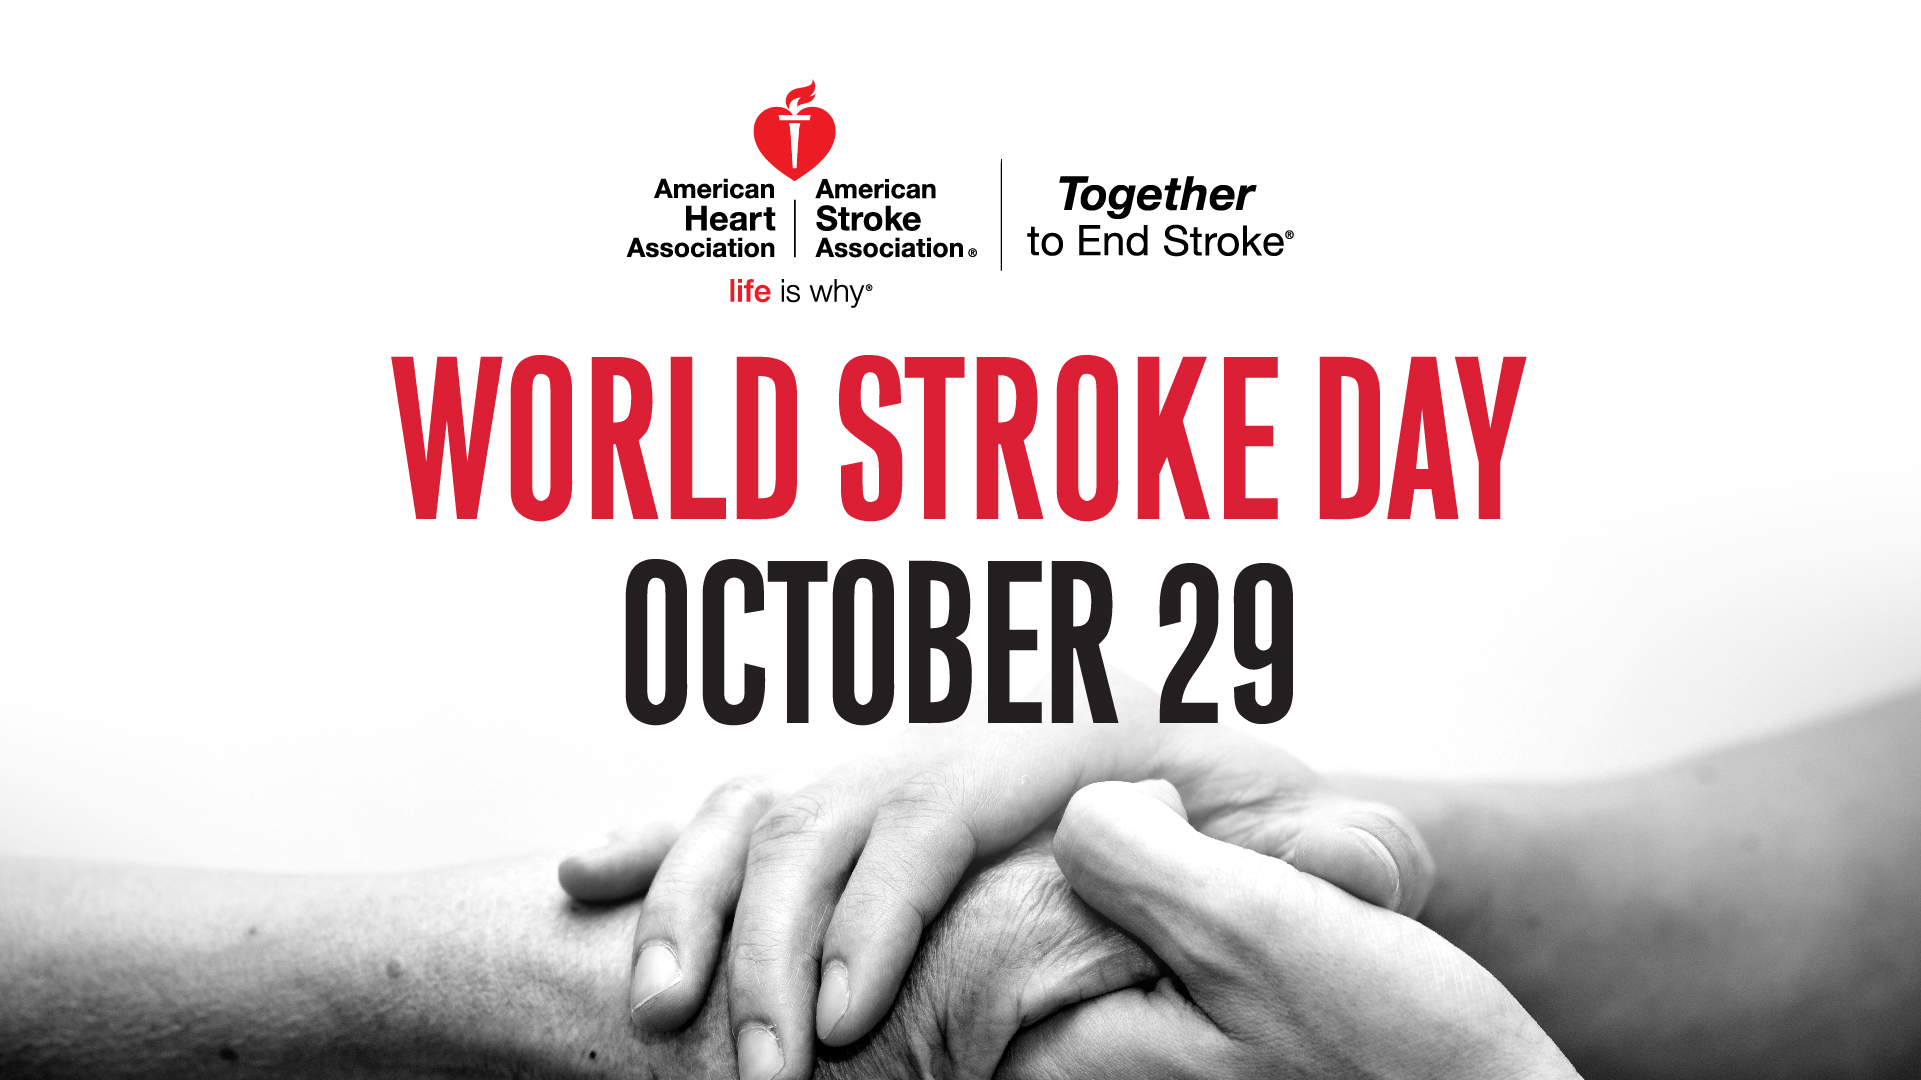 World Stroke Day - 29 October  IMAGES, GIF, ANIMATED GIF, WALLPAPER, STICKER FOR WHATSAPP & FACEBOOK